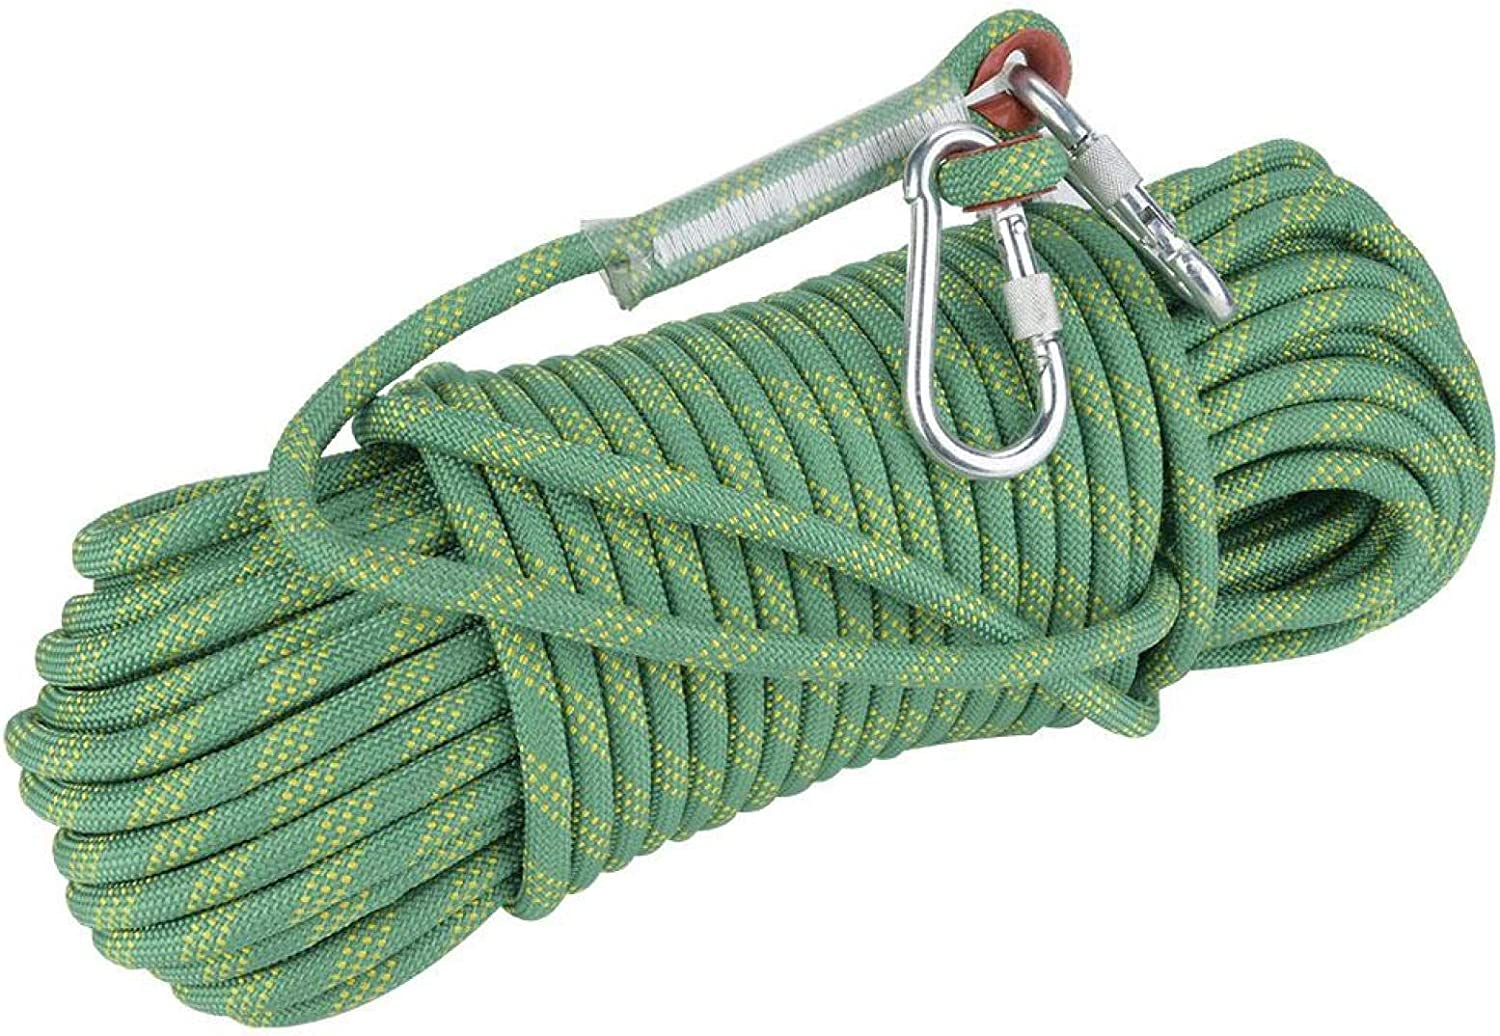 Emoshayoga Rock Climbing Escape Seattle Mall Rope Durable Outdoor quality assurance Tool